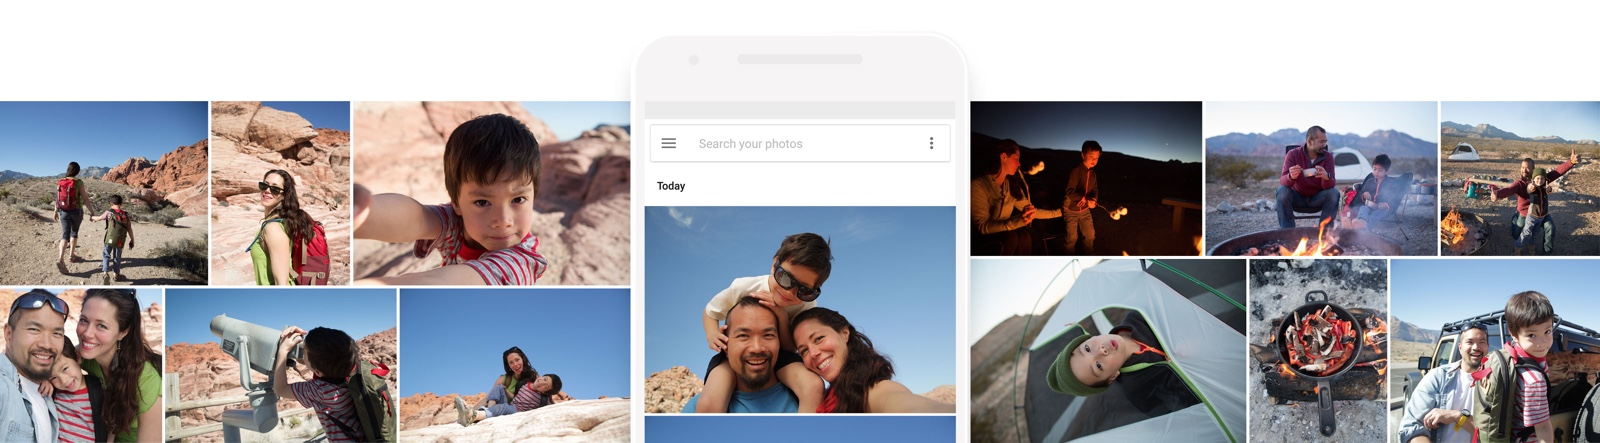 google photos   all your photos organized and easy to find